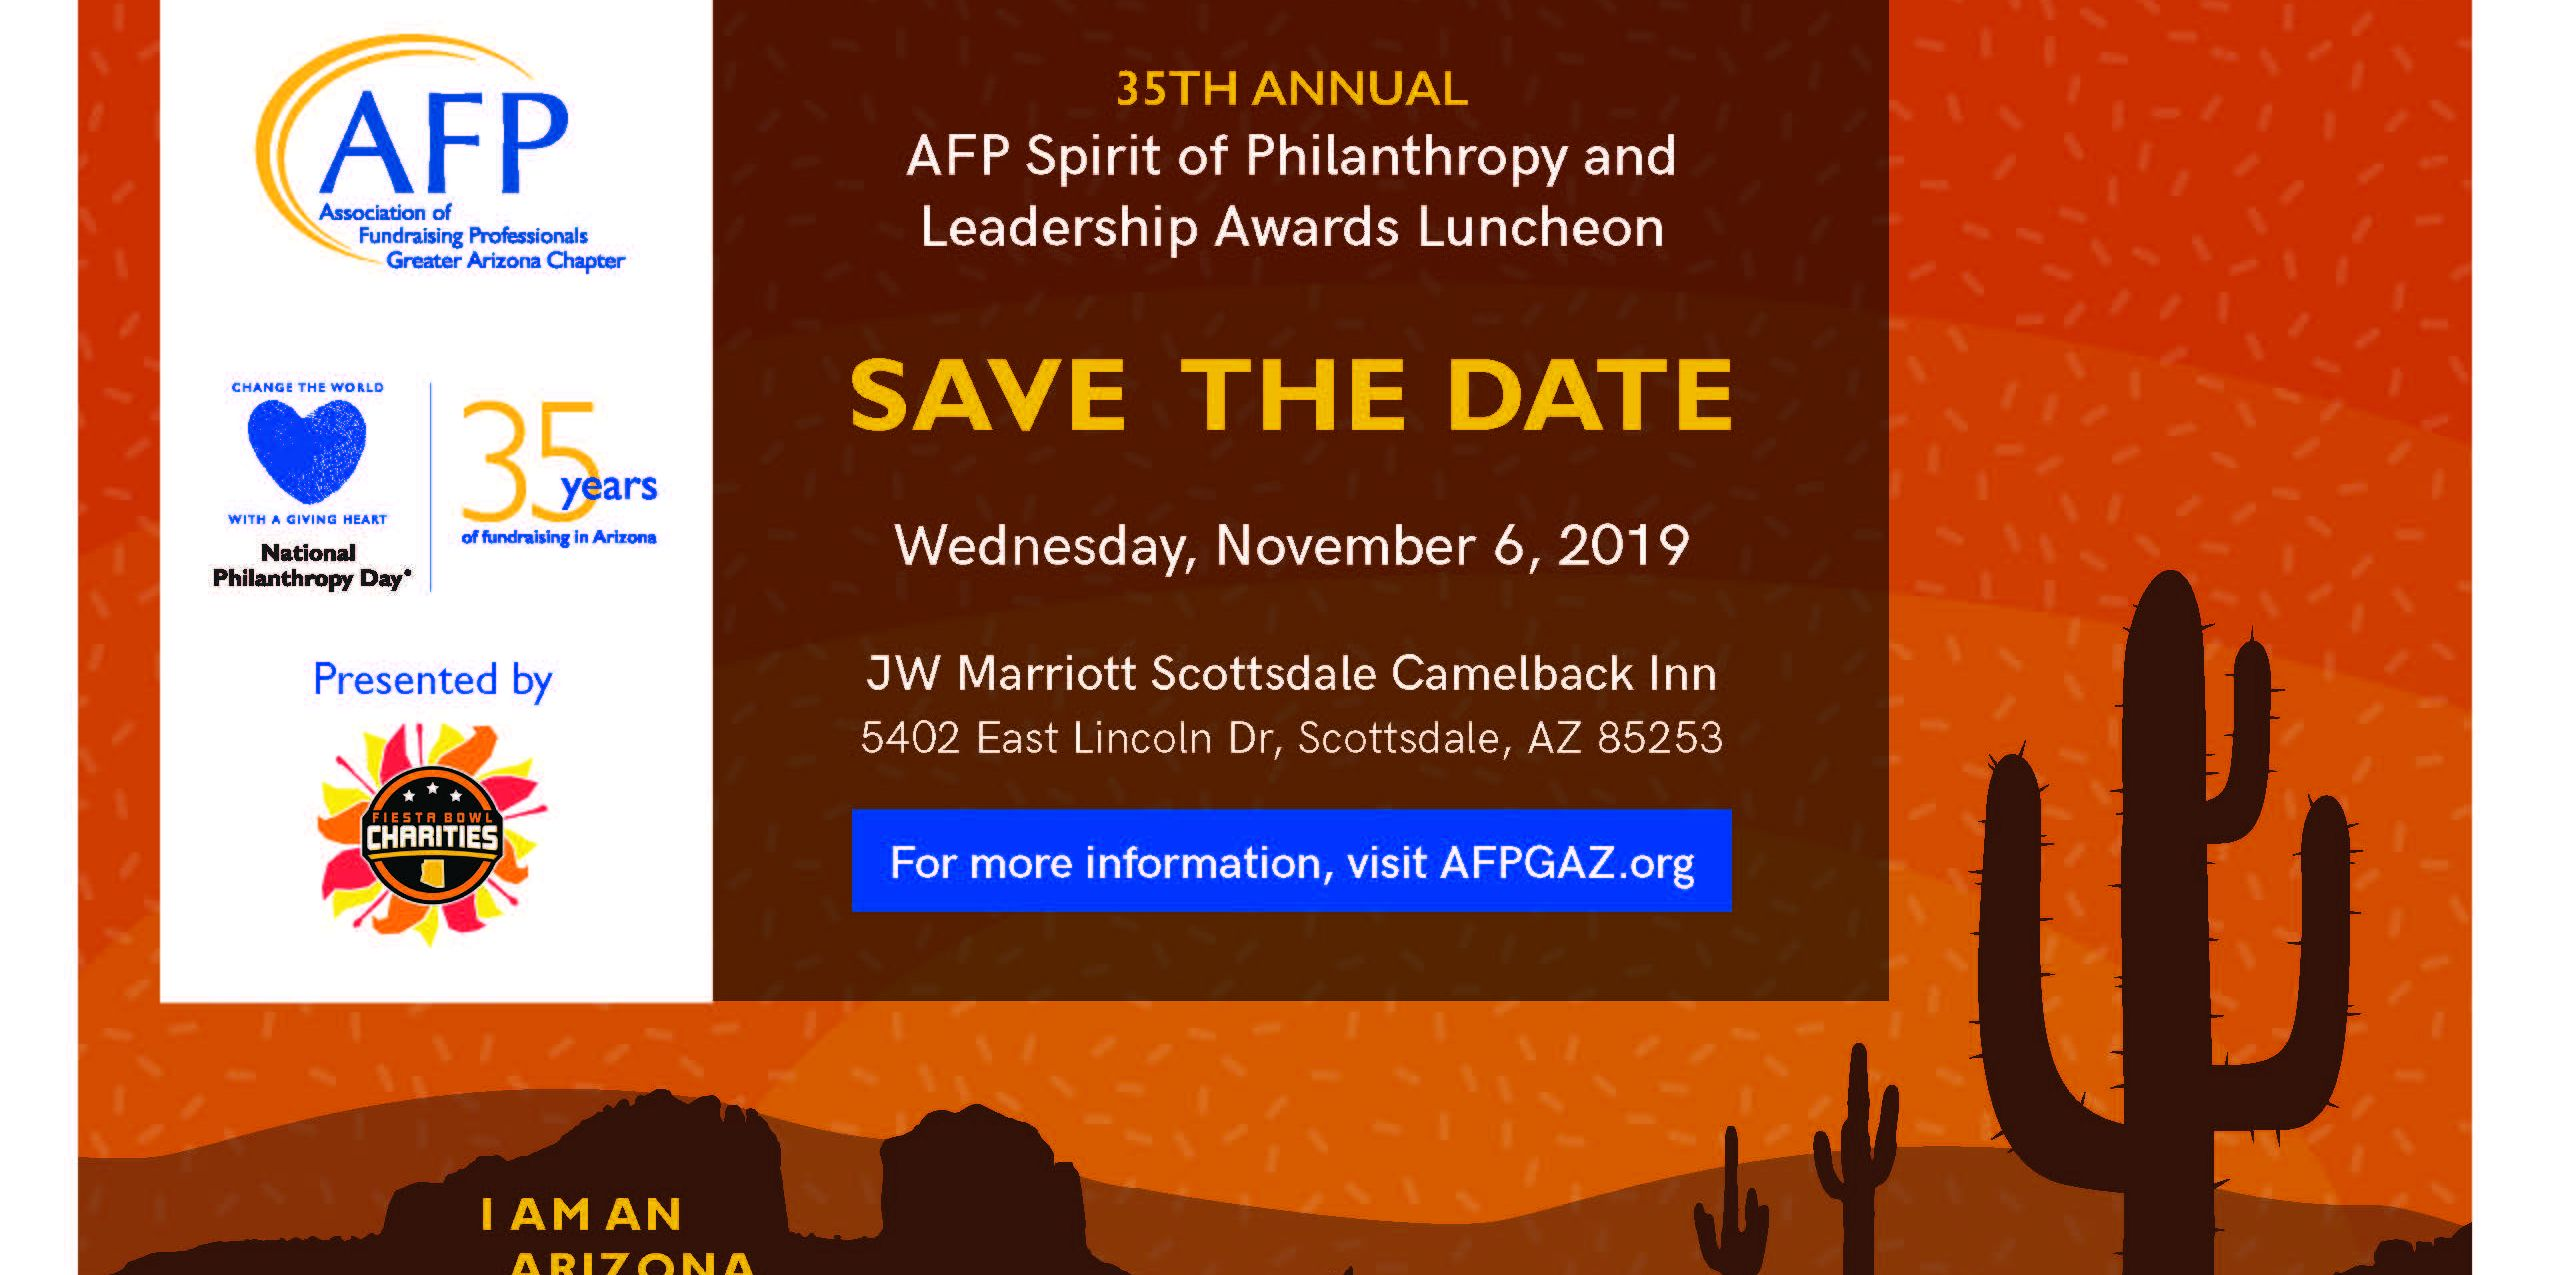 Philanthropy  Leaders to be Honored at 35th Annual Leadership Awards Luncheon